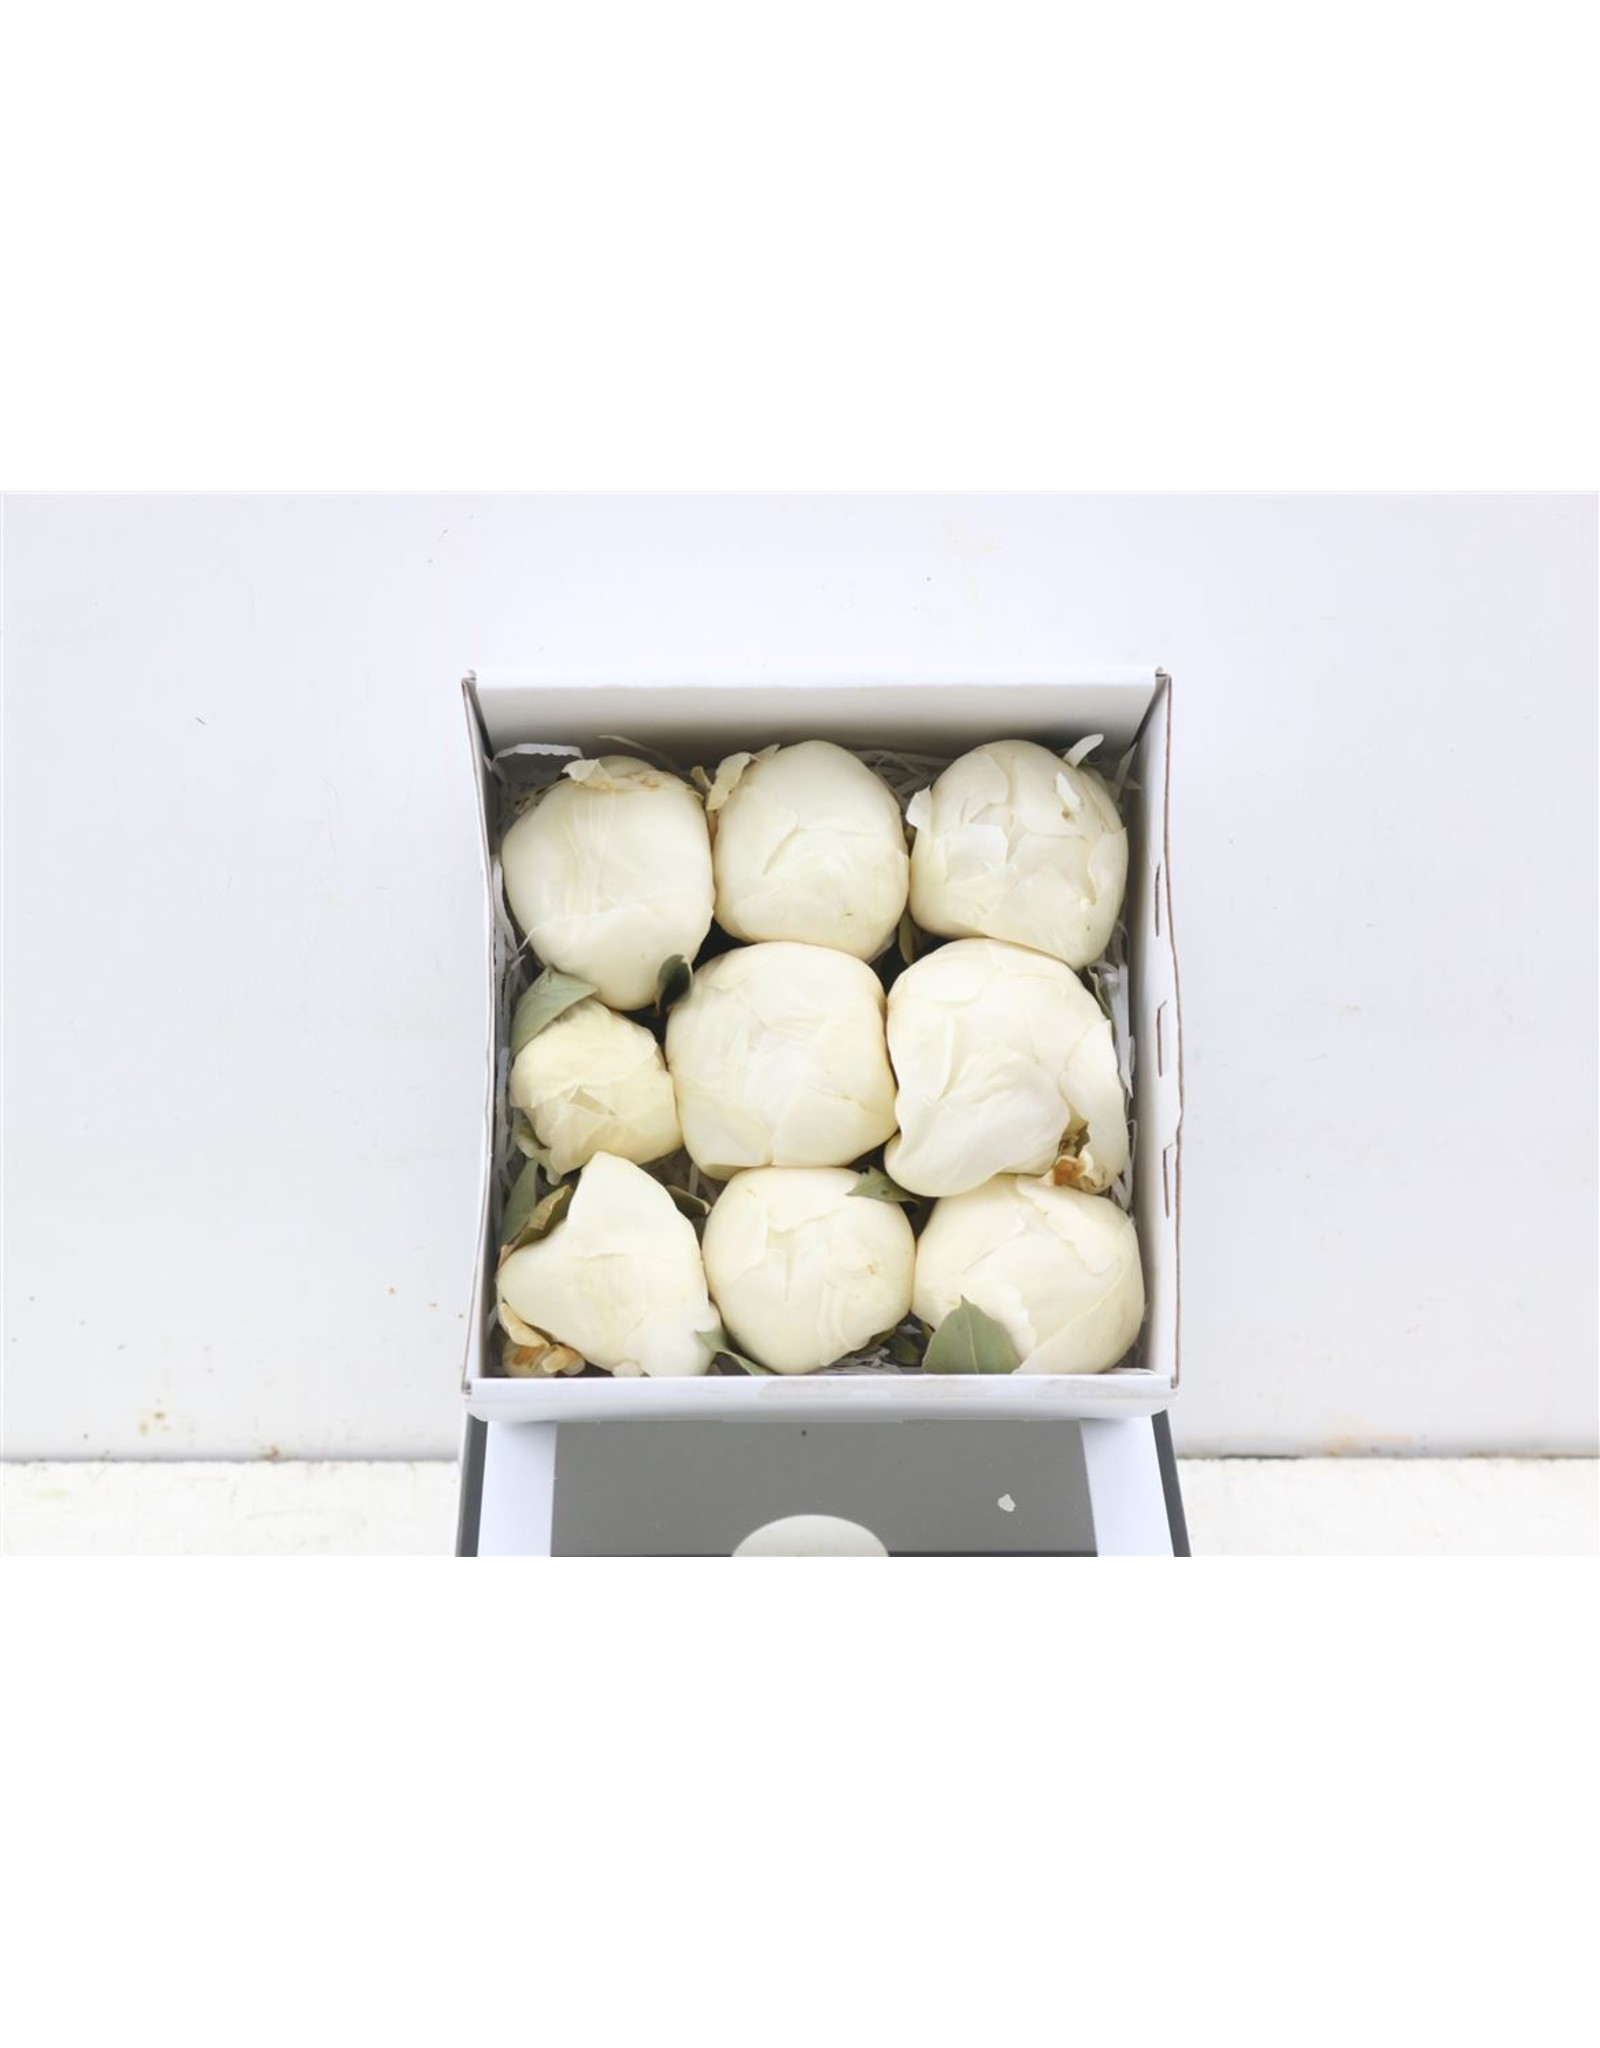 GF Peony Freeze Dried White 9pc Box x 9